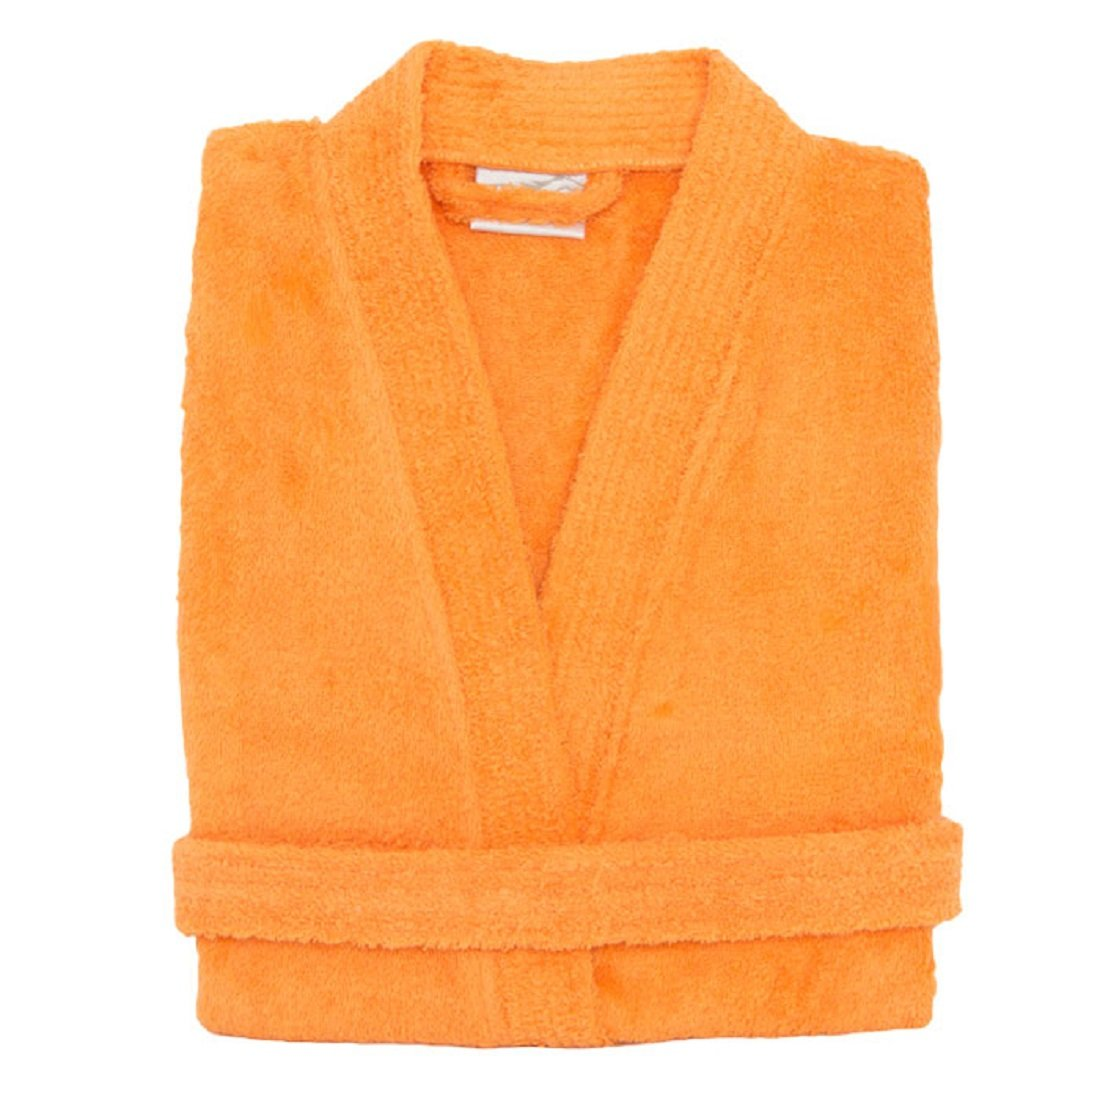 Terry Cloth Bathrobe%100 Cotton Men's Women's Orange Robe